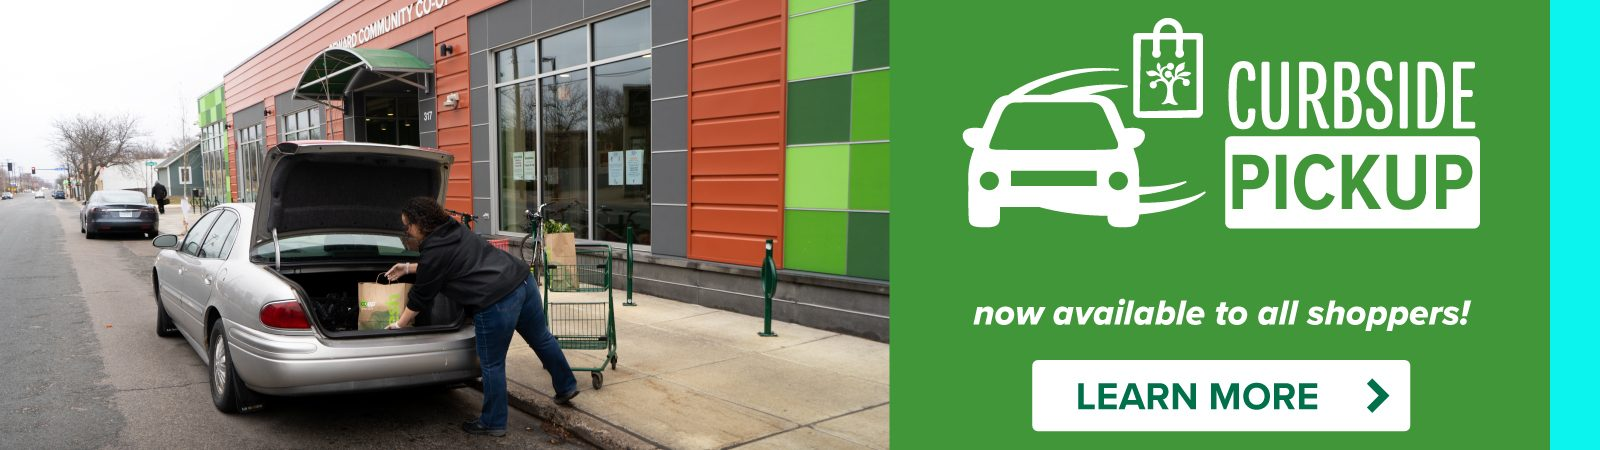 curbside pickup now available to all shoppers